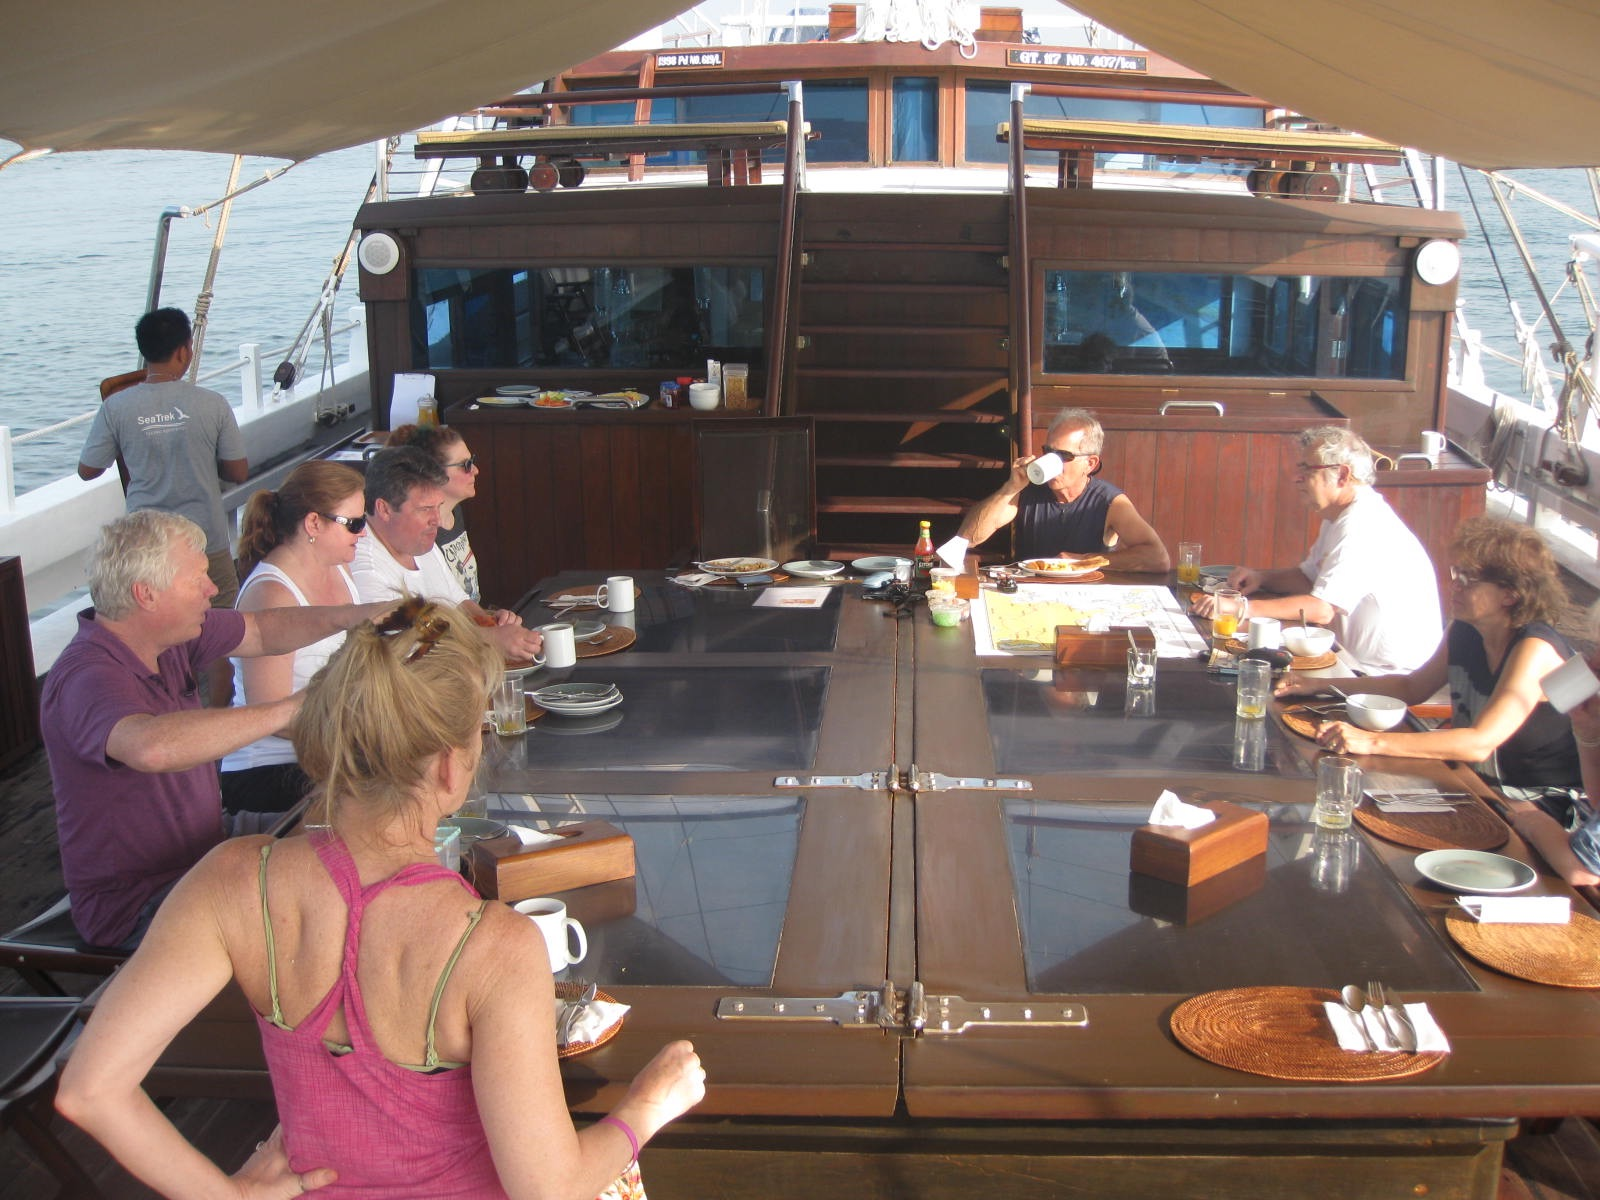 It's easy to make friends on an intimate small ship. * Photo: Heidi Sarna